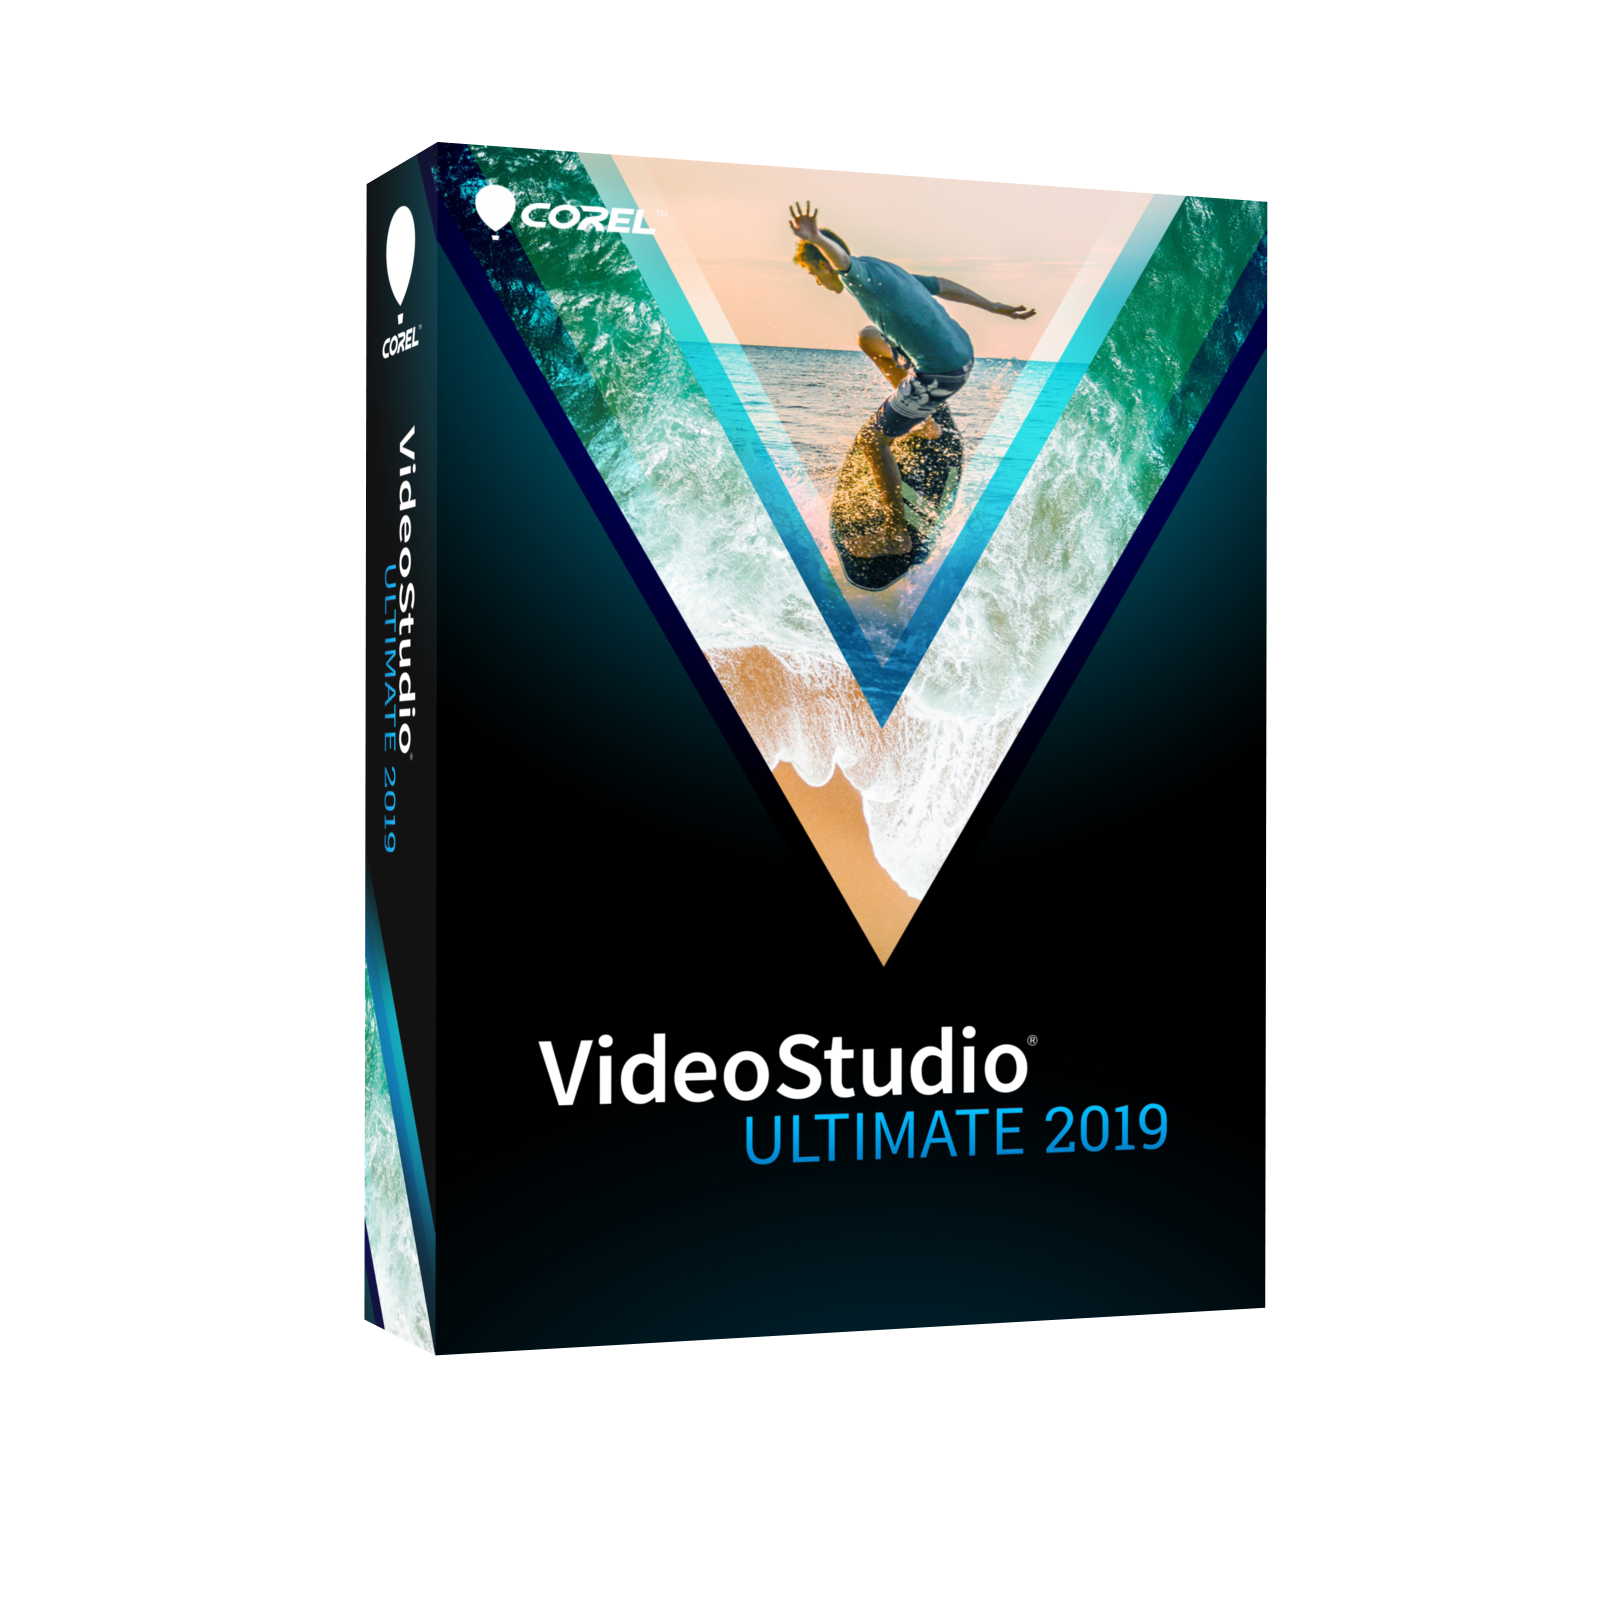 [TEST LOGICIEL] COREL VIDEOSTUDIO 2019 ULTIMATE PC